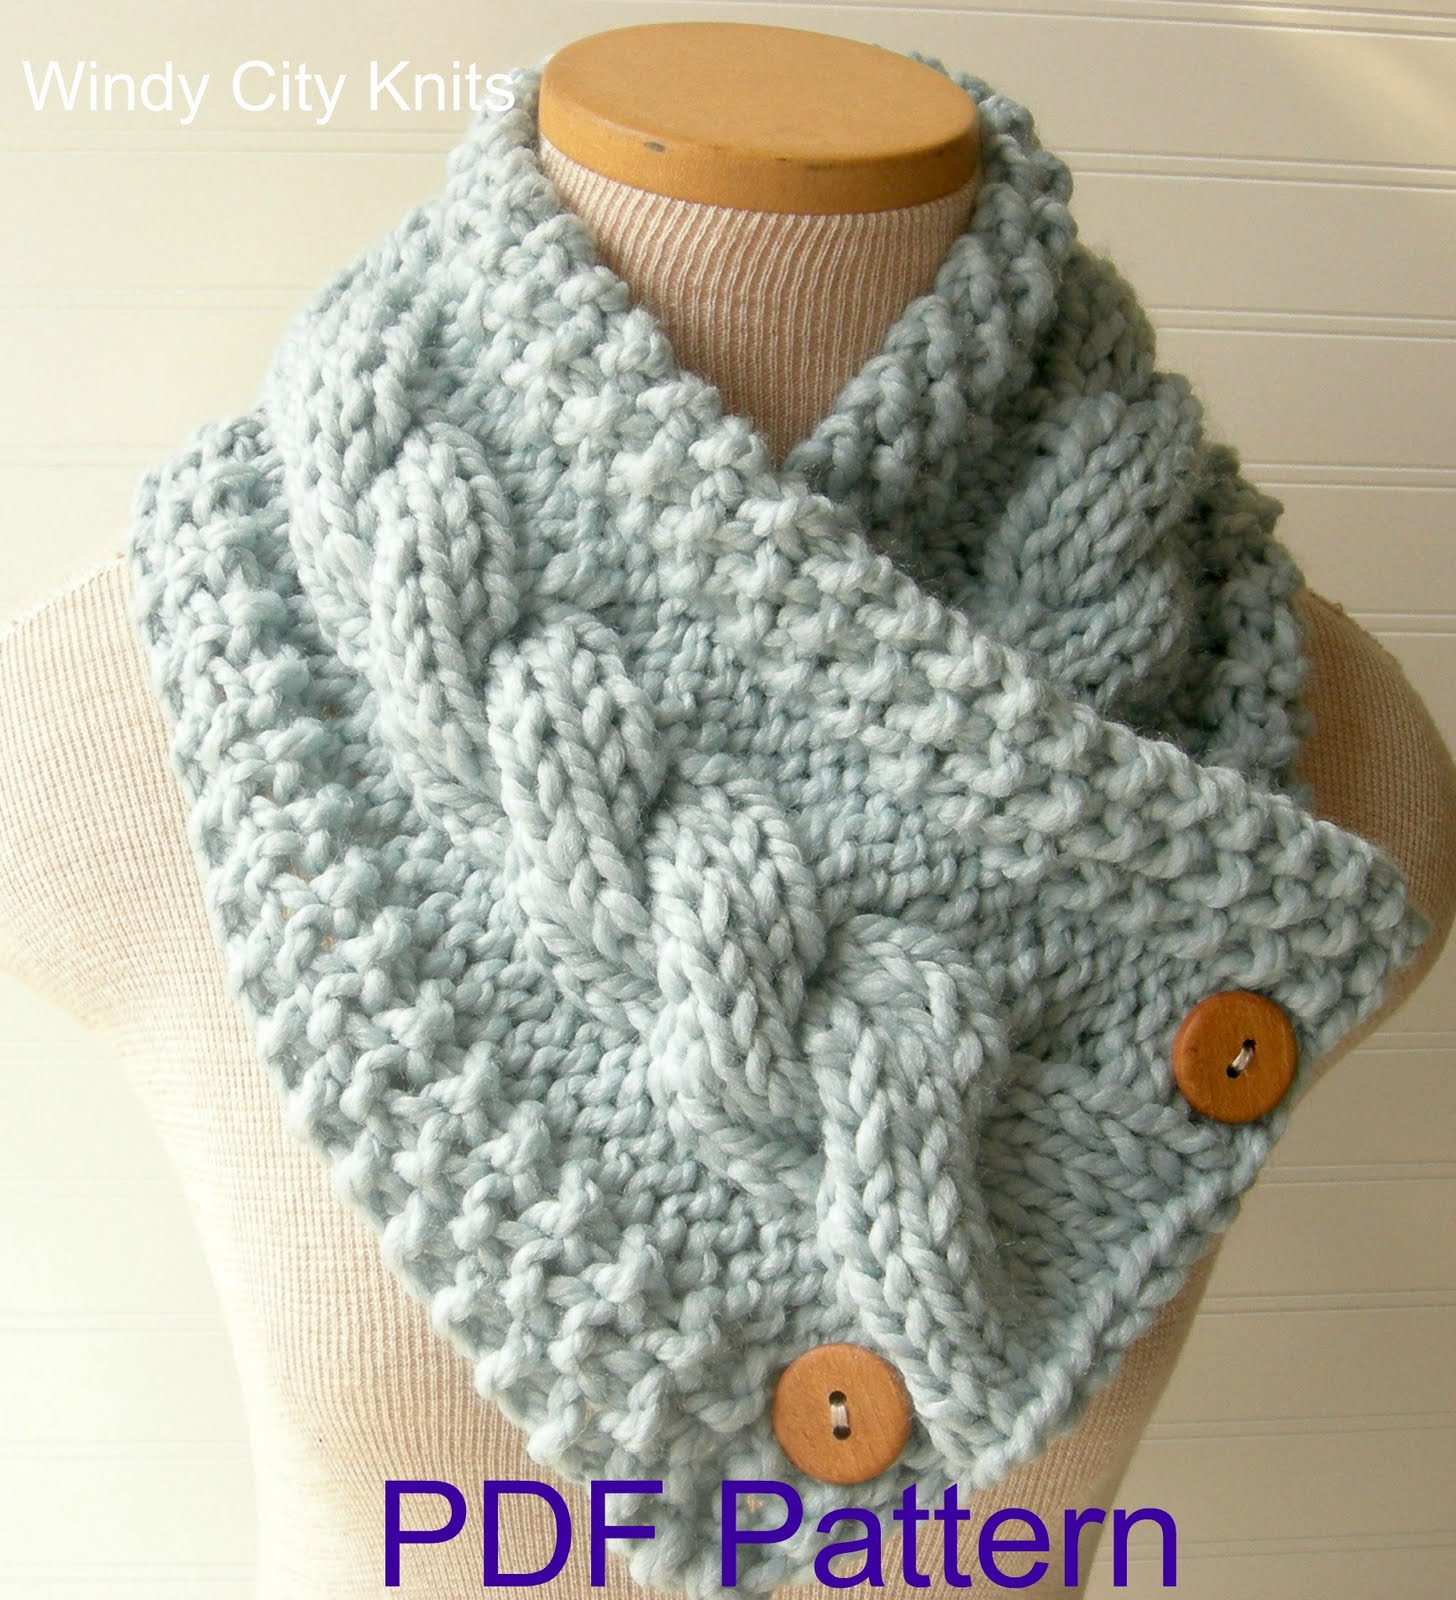 Knitting Scarves Free Patterns : WindyCityKnits: Knit Cable Cowl Scarf Pattern Pdf